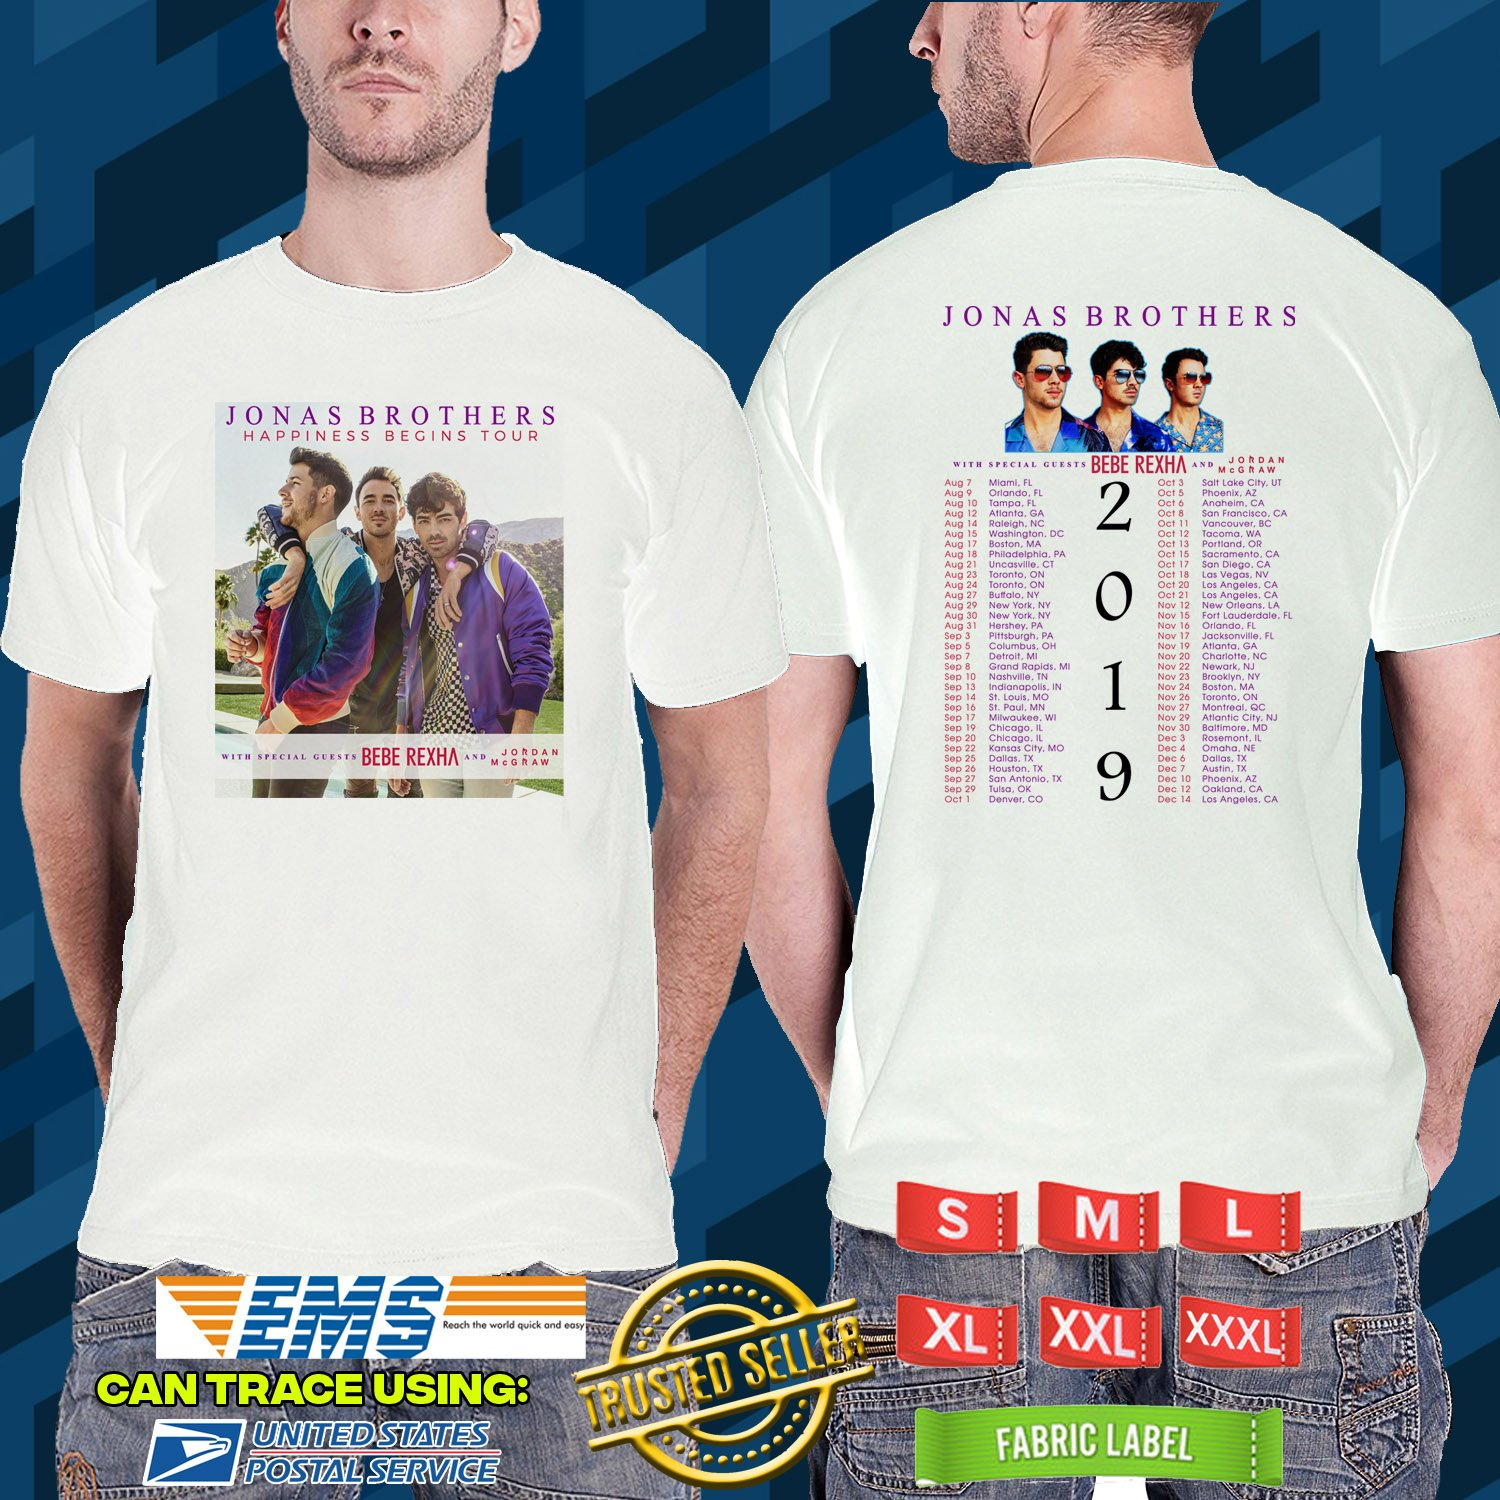 d4a21da41 2019 LIVE JONAS BROTHERS HAPPINESS BAGINS TOUR WHITE TSHIRT W DATES CODE  RDF01